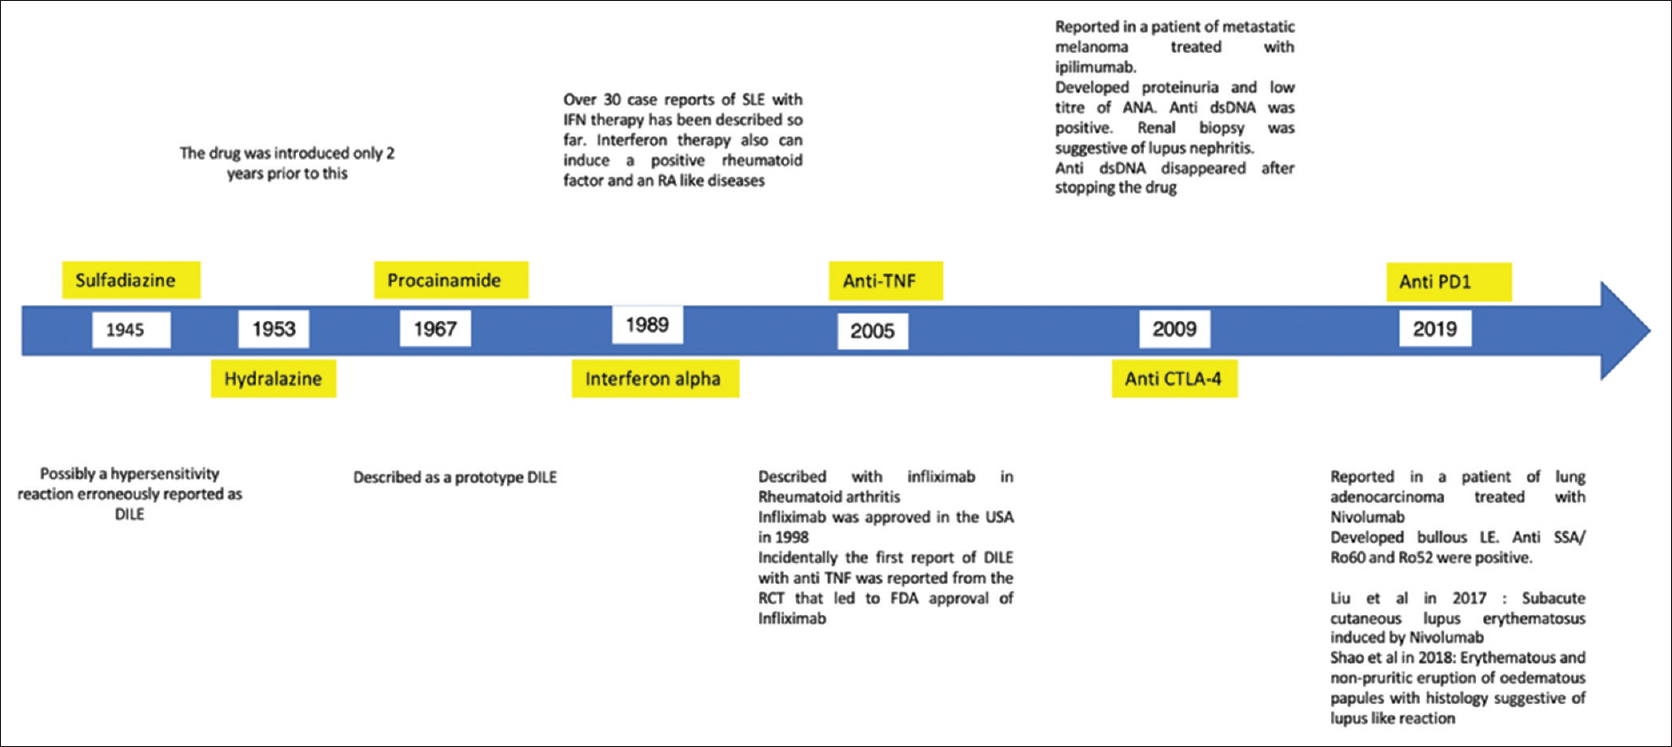 Figure 1: Timeline and details of the important drug-induced lupus cases. CTLA: Cytotoxic T-lymphocyte protein, DILE: Drug-induced lupus erythematous, IFN: Interferon, LE: Lupus erythematosus, PD1: Programmed cell death protein 1, RCT: Randomized controlled trial, SSA: Sjogren's syndrome antigen A, TNF: Tumor necrosis factor